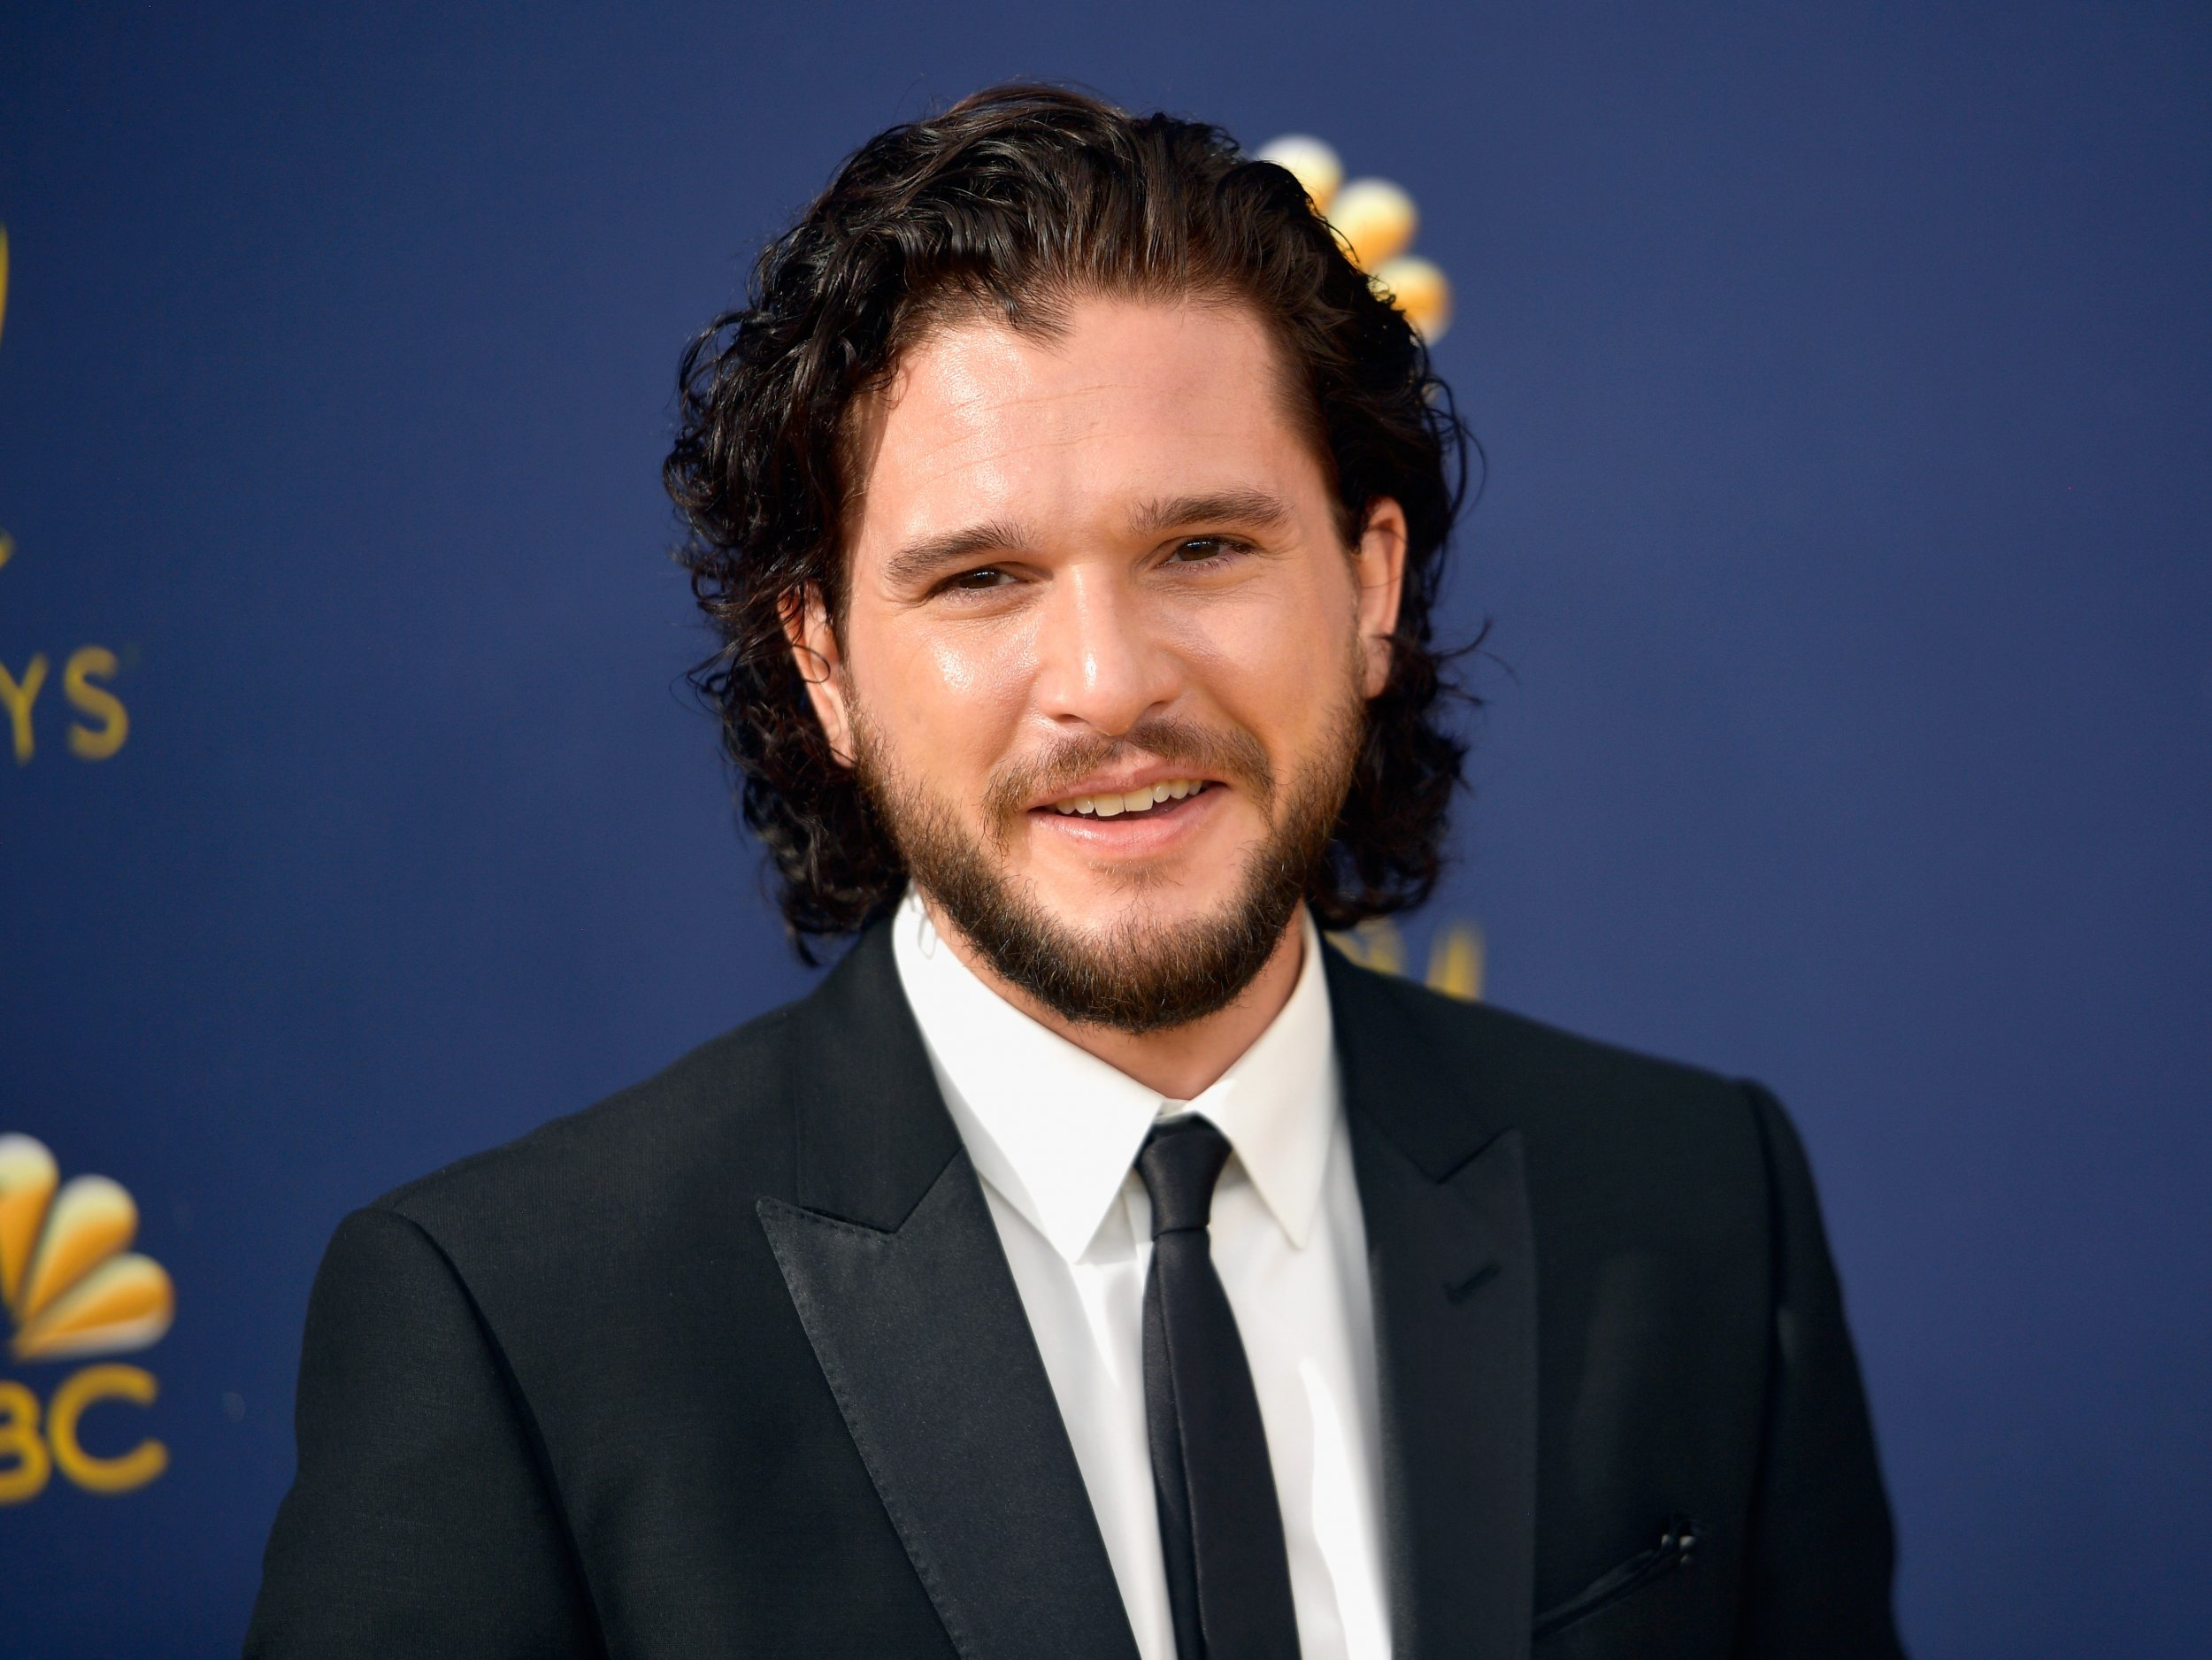 Kit Harington says 'Game of Thrones' Screwed the Political Landscape—'Certain Political Figures Tried to Emulate Joffrey'